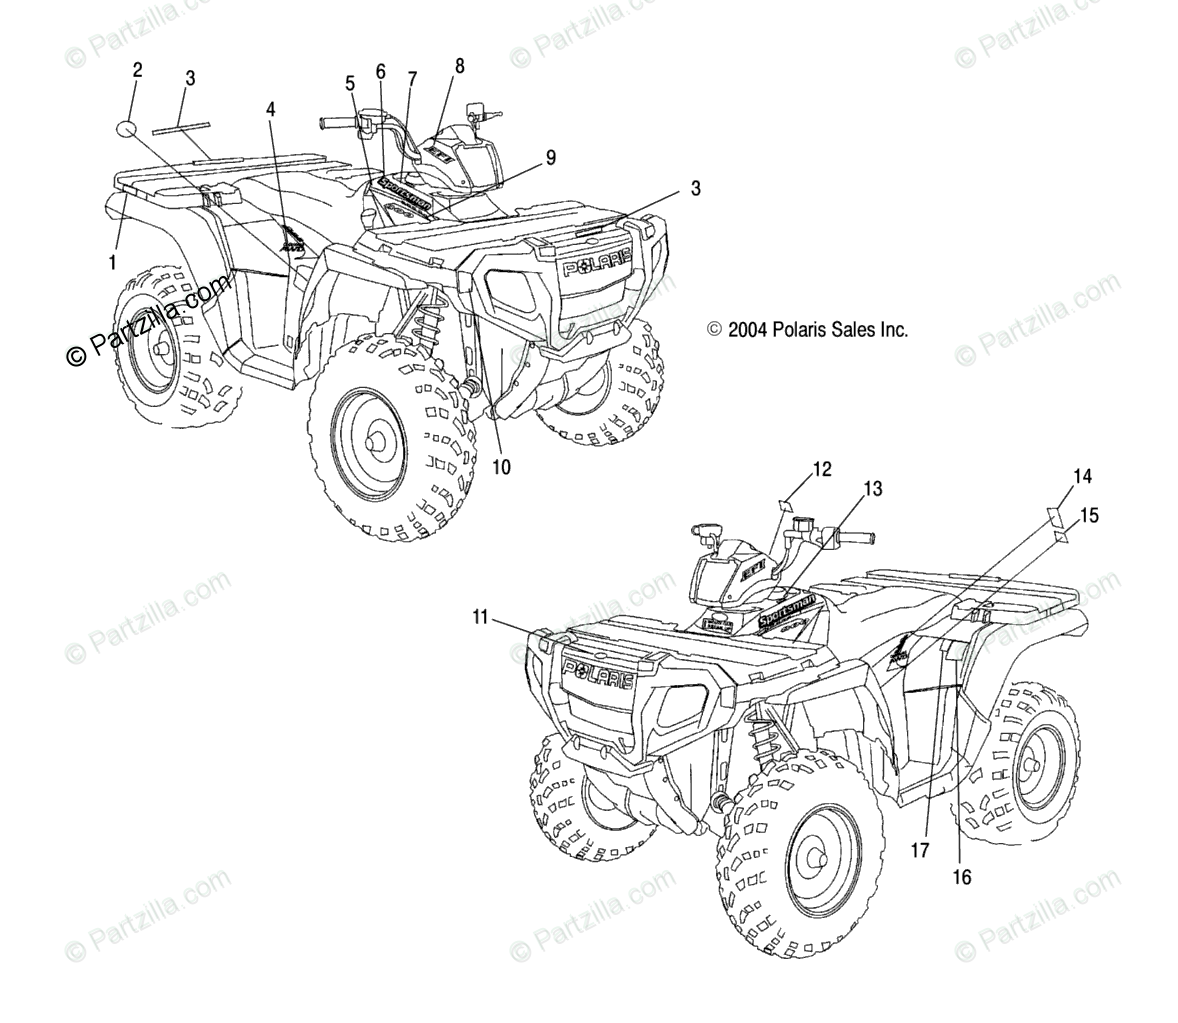 Polaris ATV 2005 OEM Parts Diagram for Decals A05mh76au/Aw